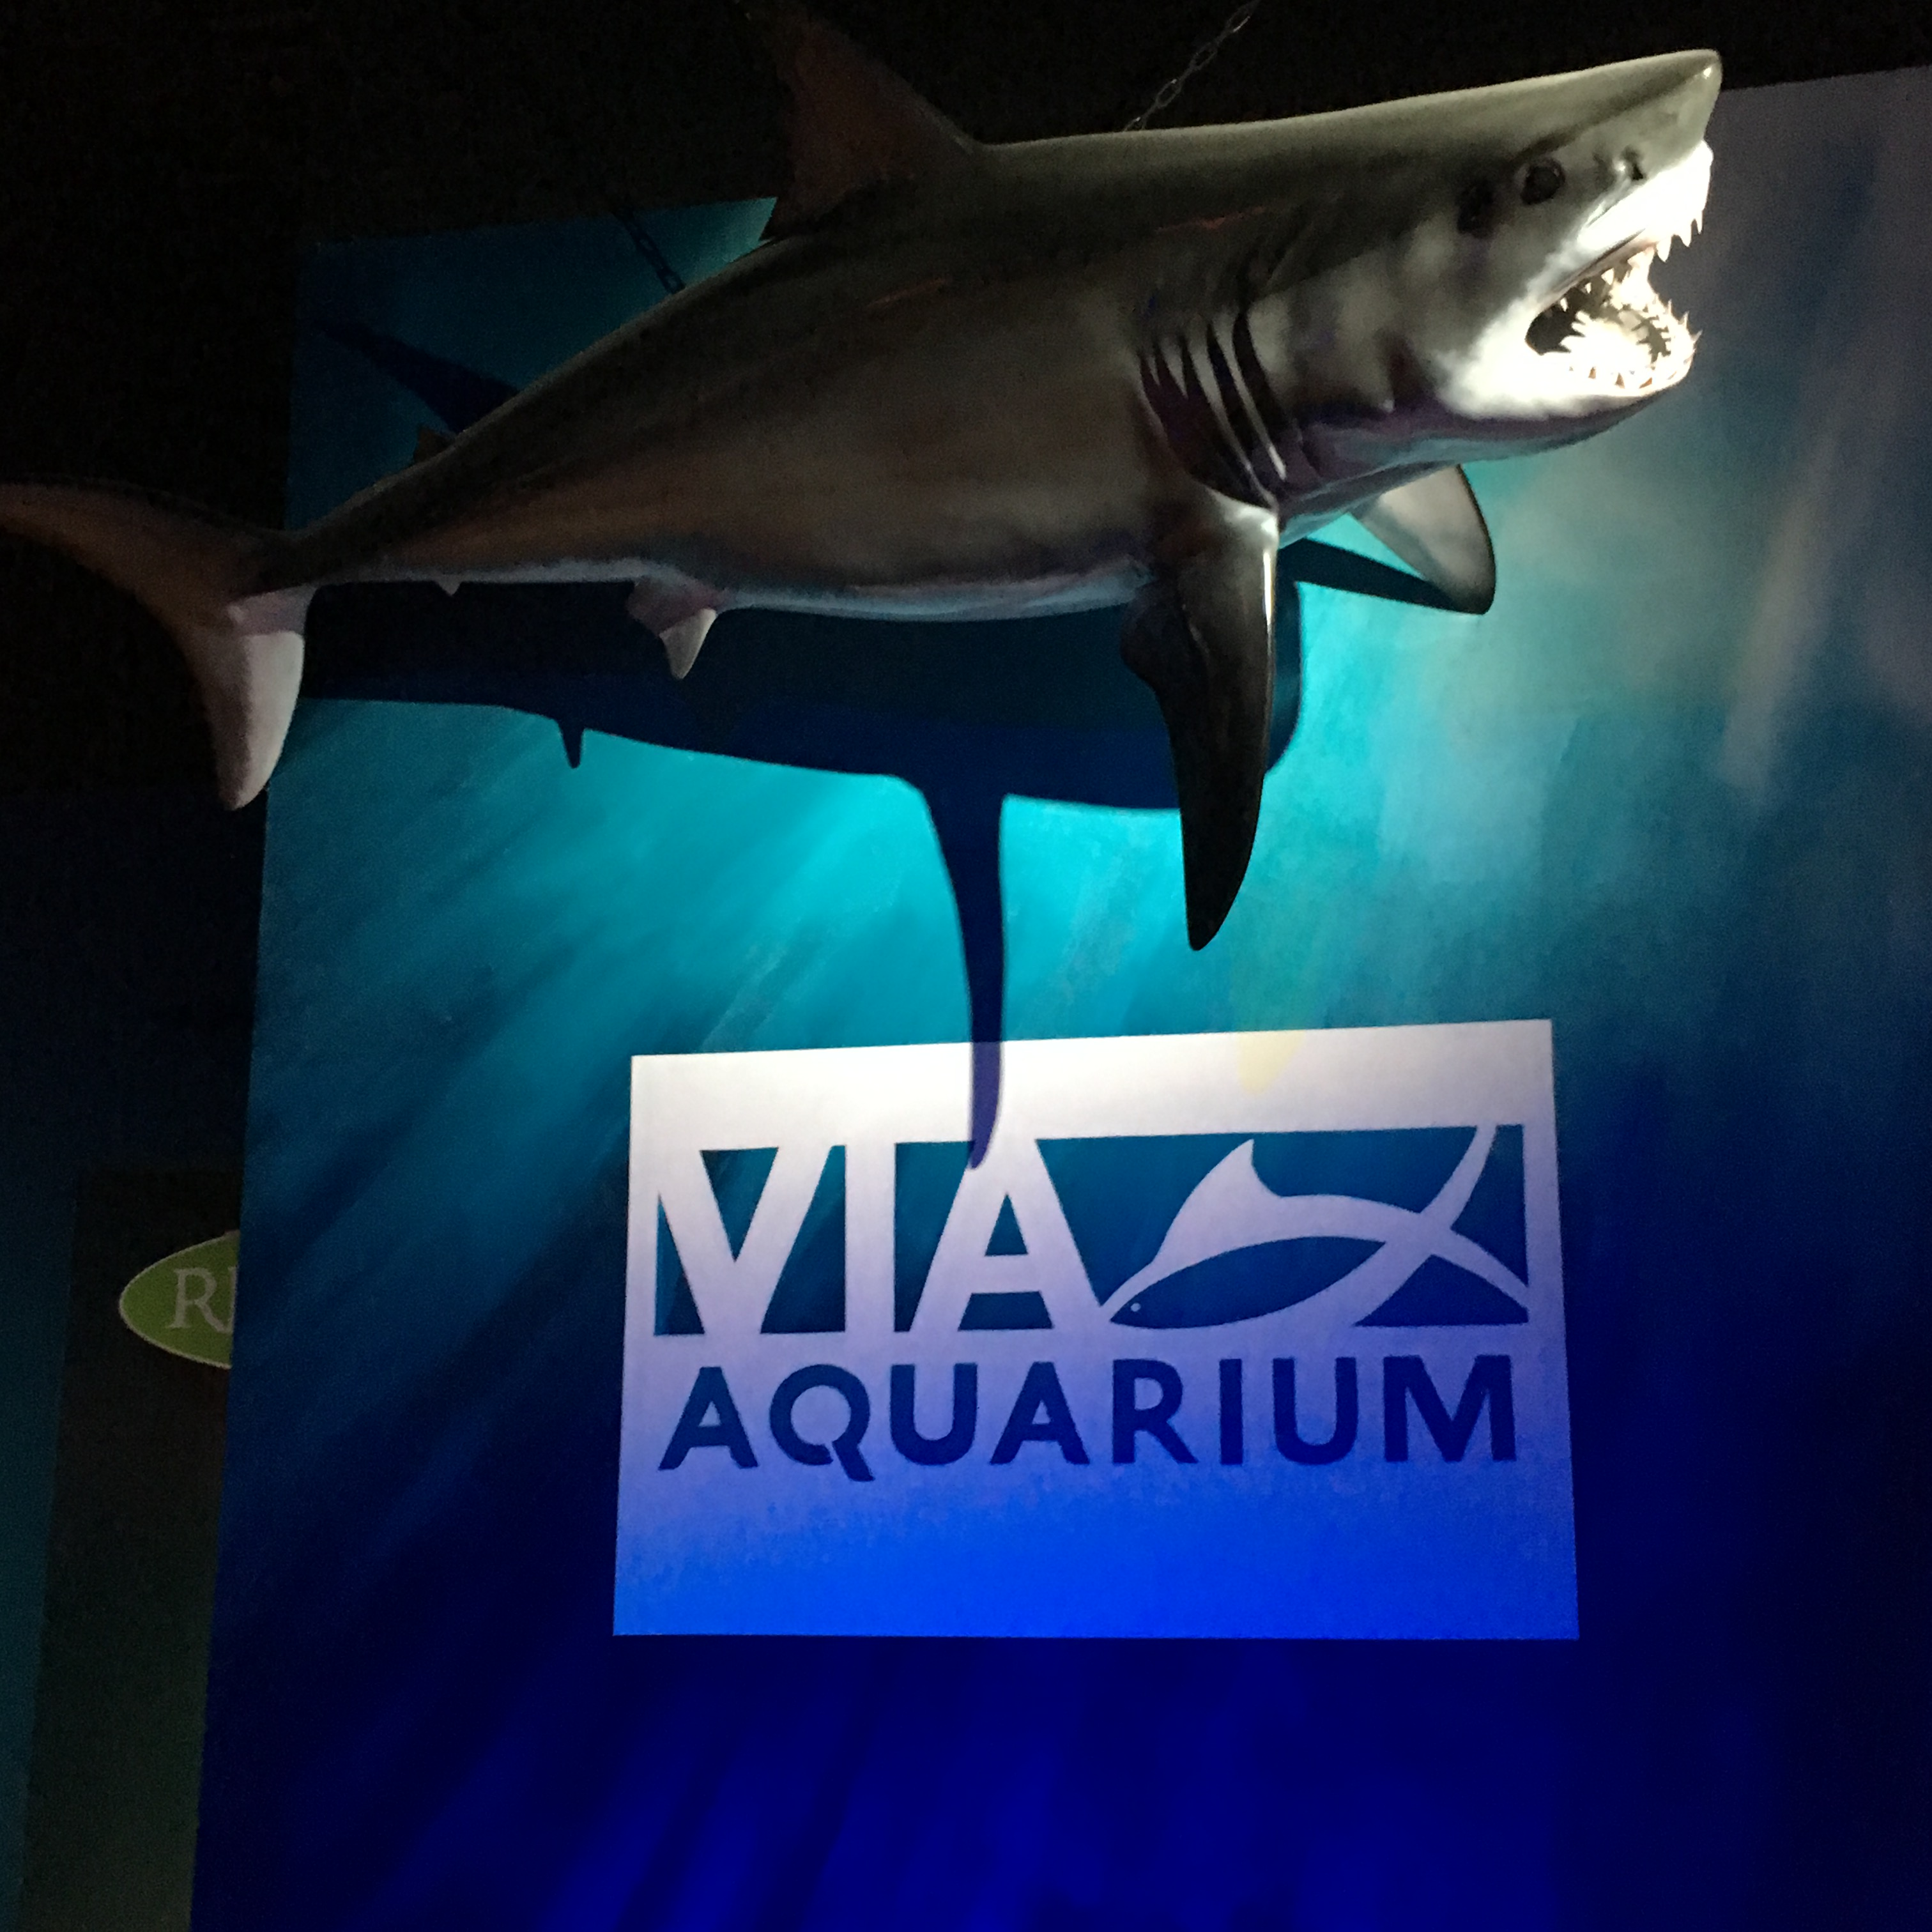 REVIEW: VIA Aquarium, Schenectady [PHOTOS]